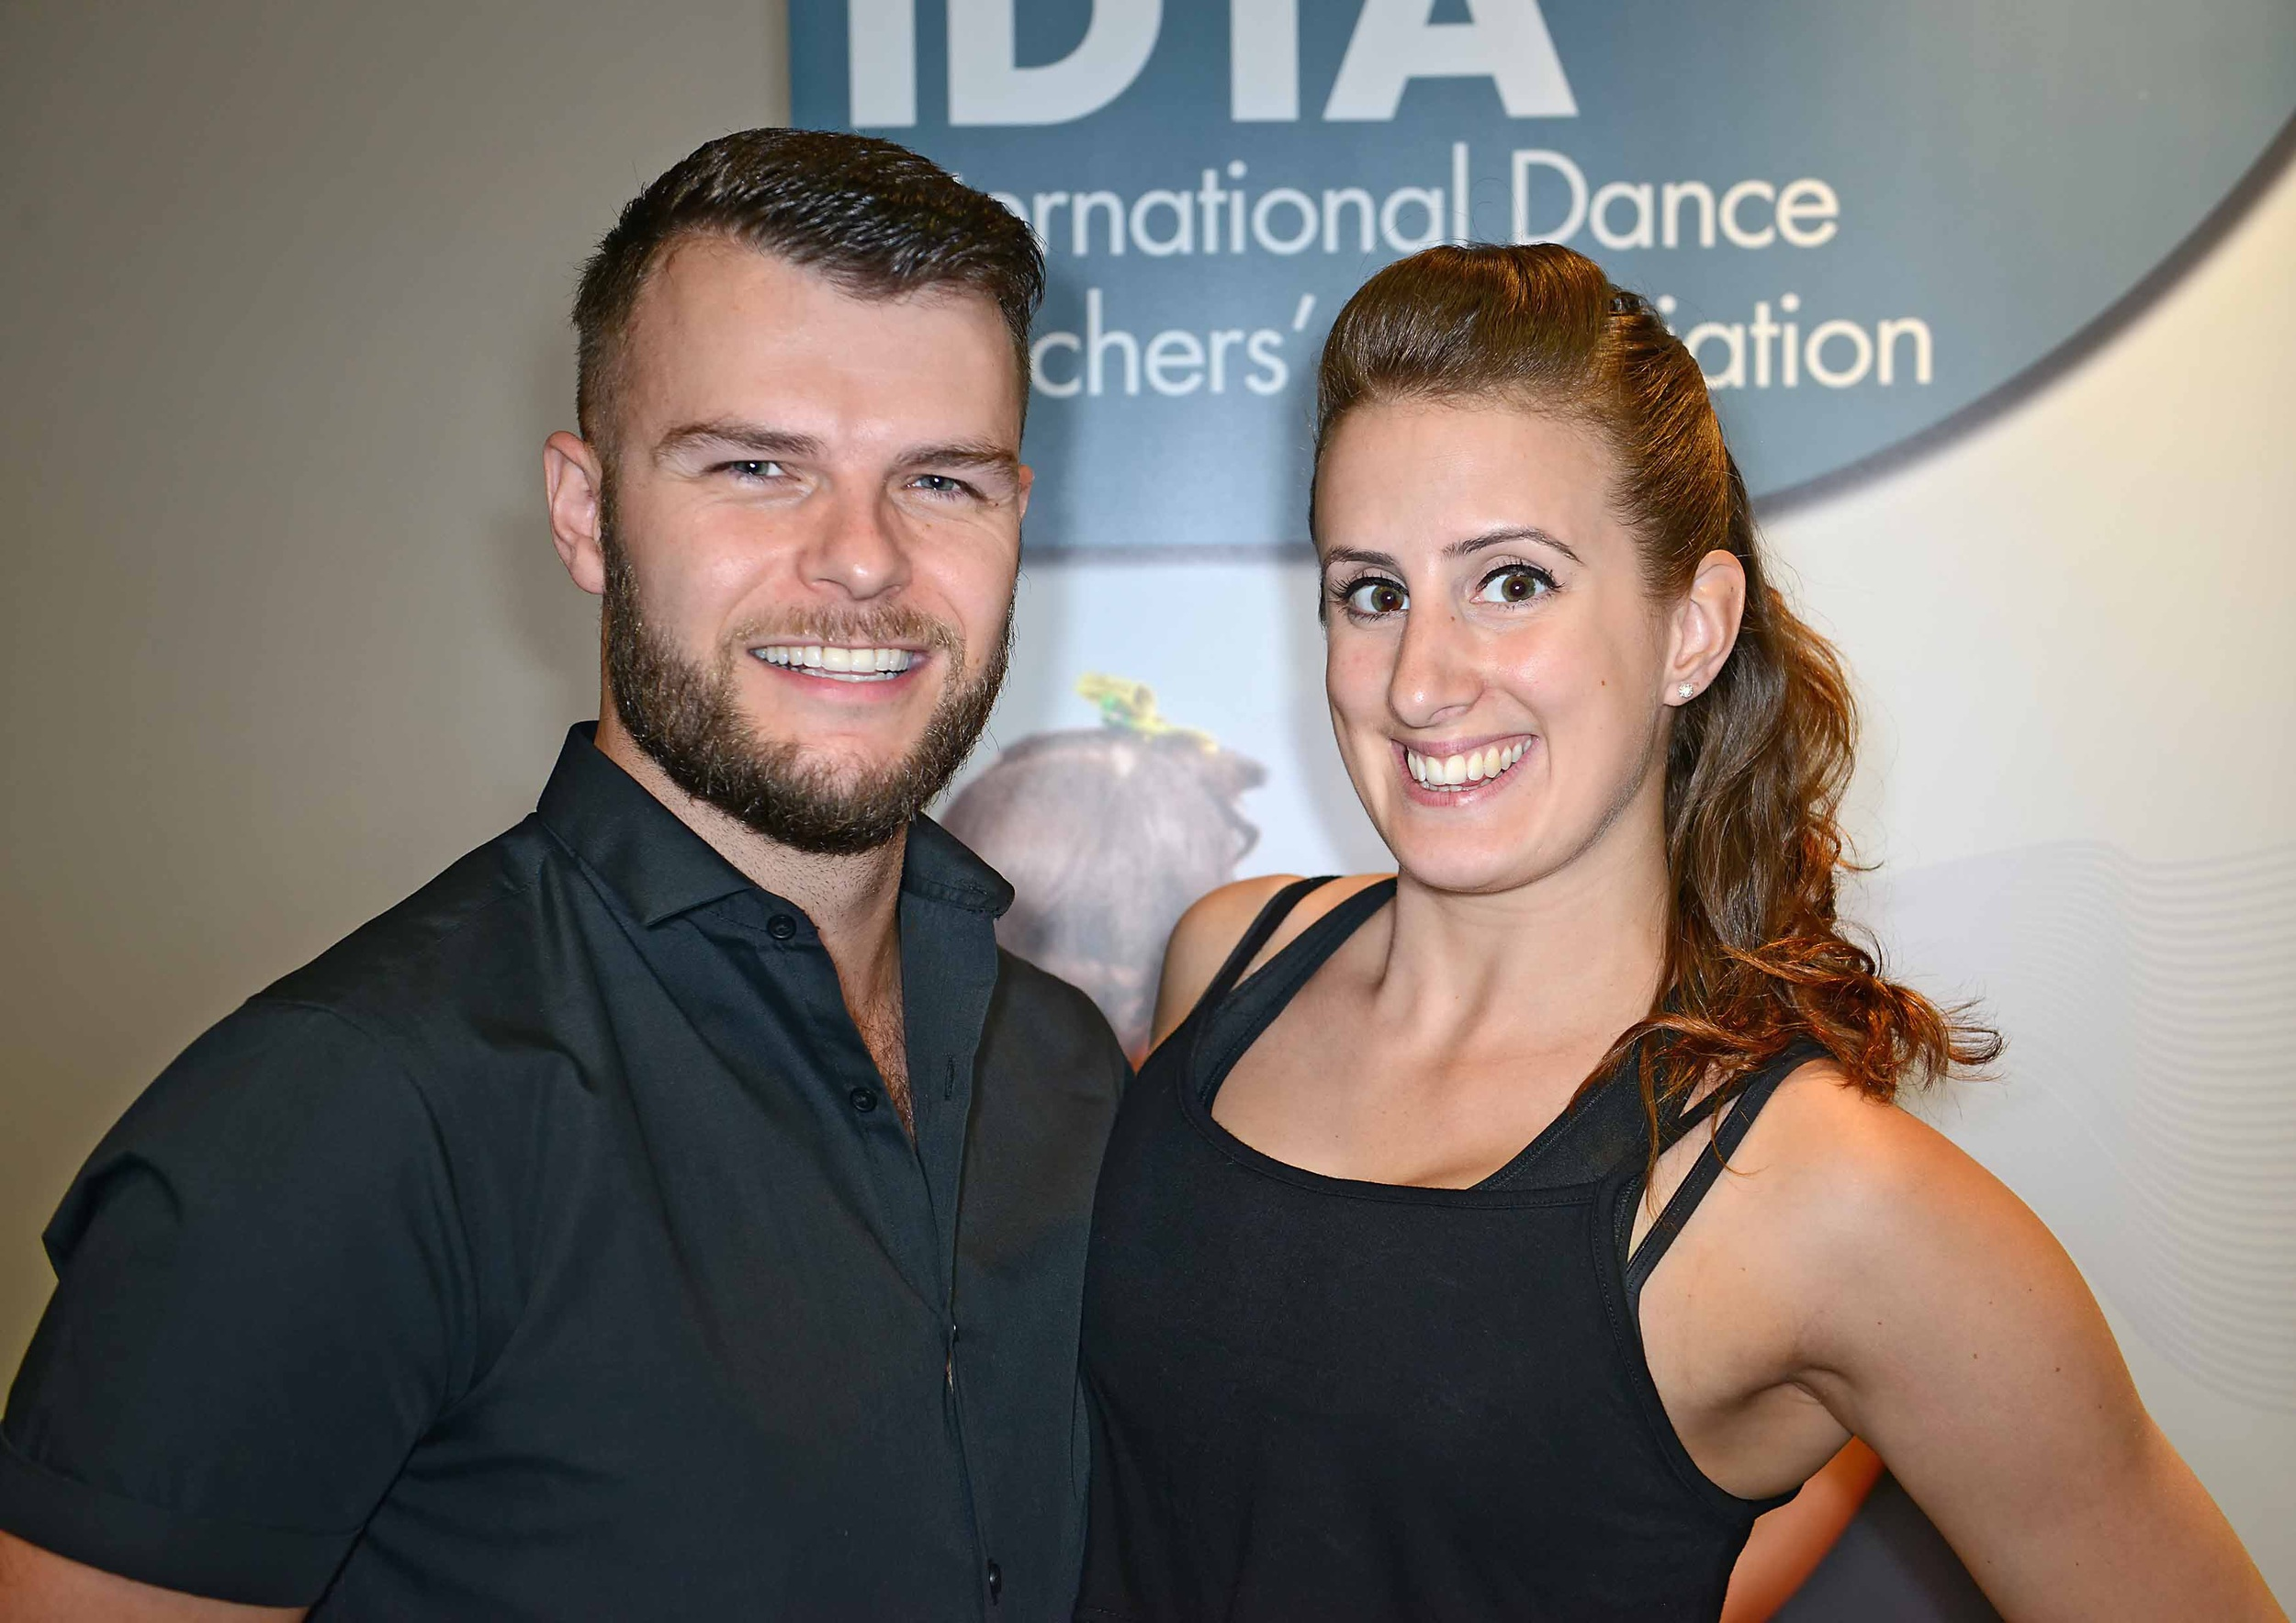 James and Louise lecture on Salsa for the International Dance Teacher's Association's Annual Congress 2015